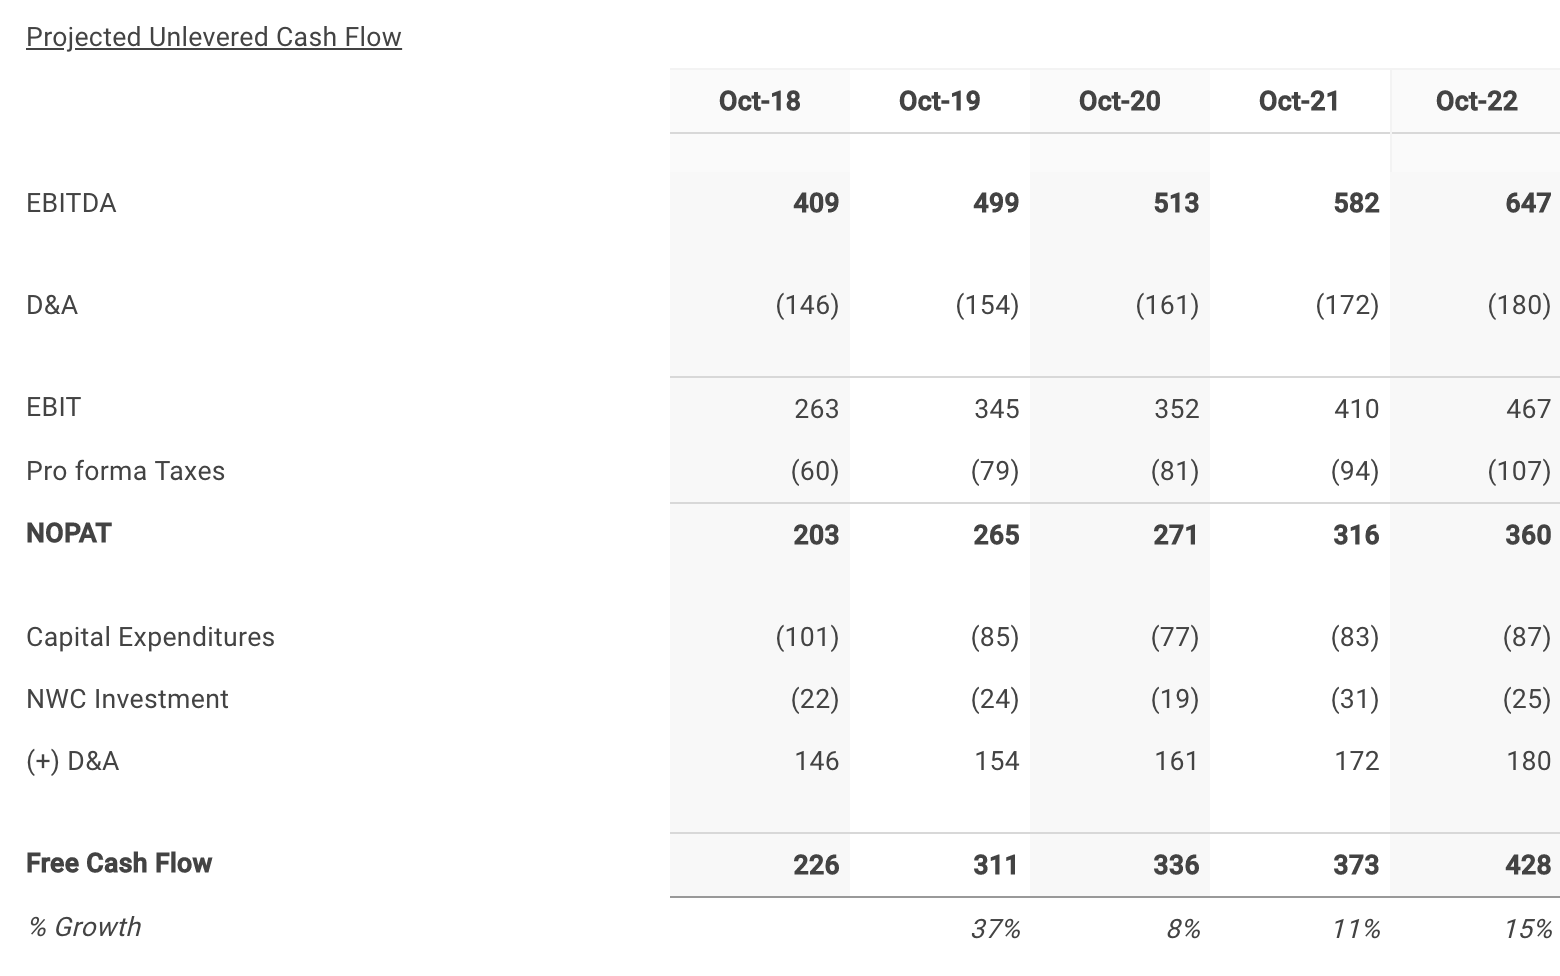 Ciena 's Five Year Projected Free Cash Flows